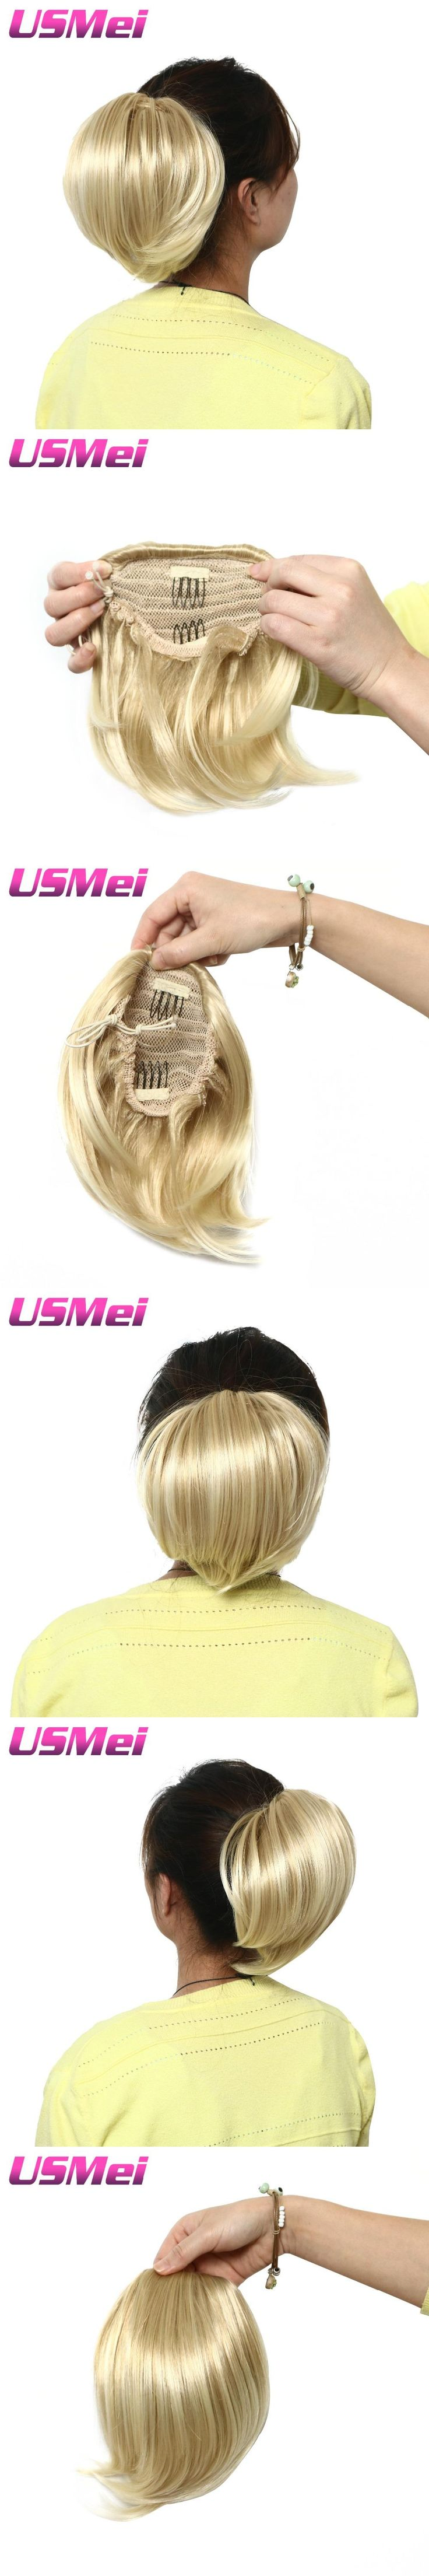 USMEI Frosted blonde short straight ponytail hair extension synthetic Claw Clip in hair piece with drawstring for every women